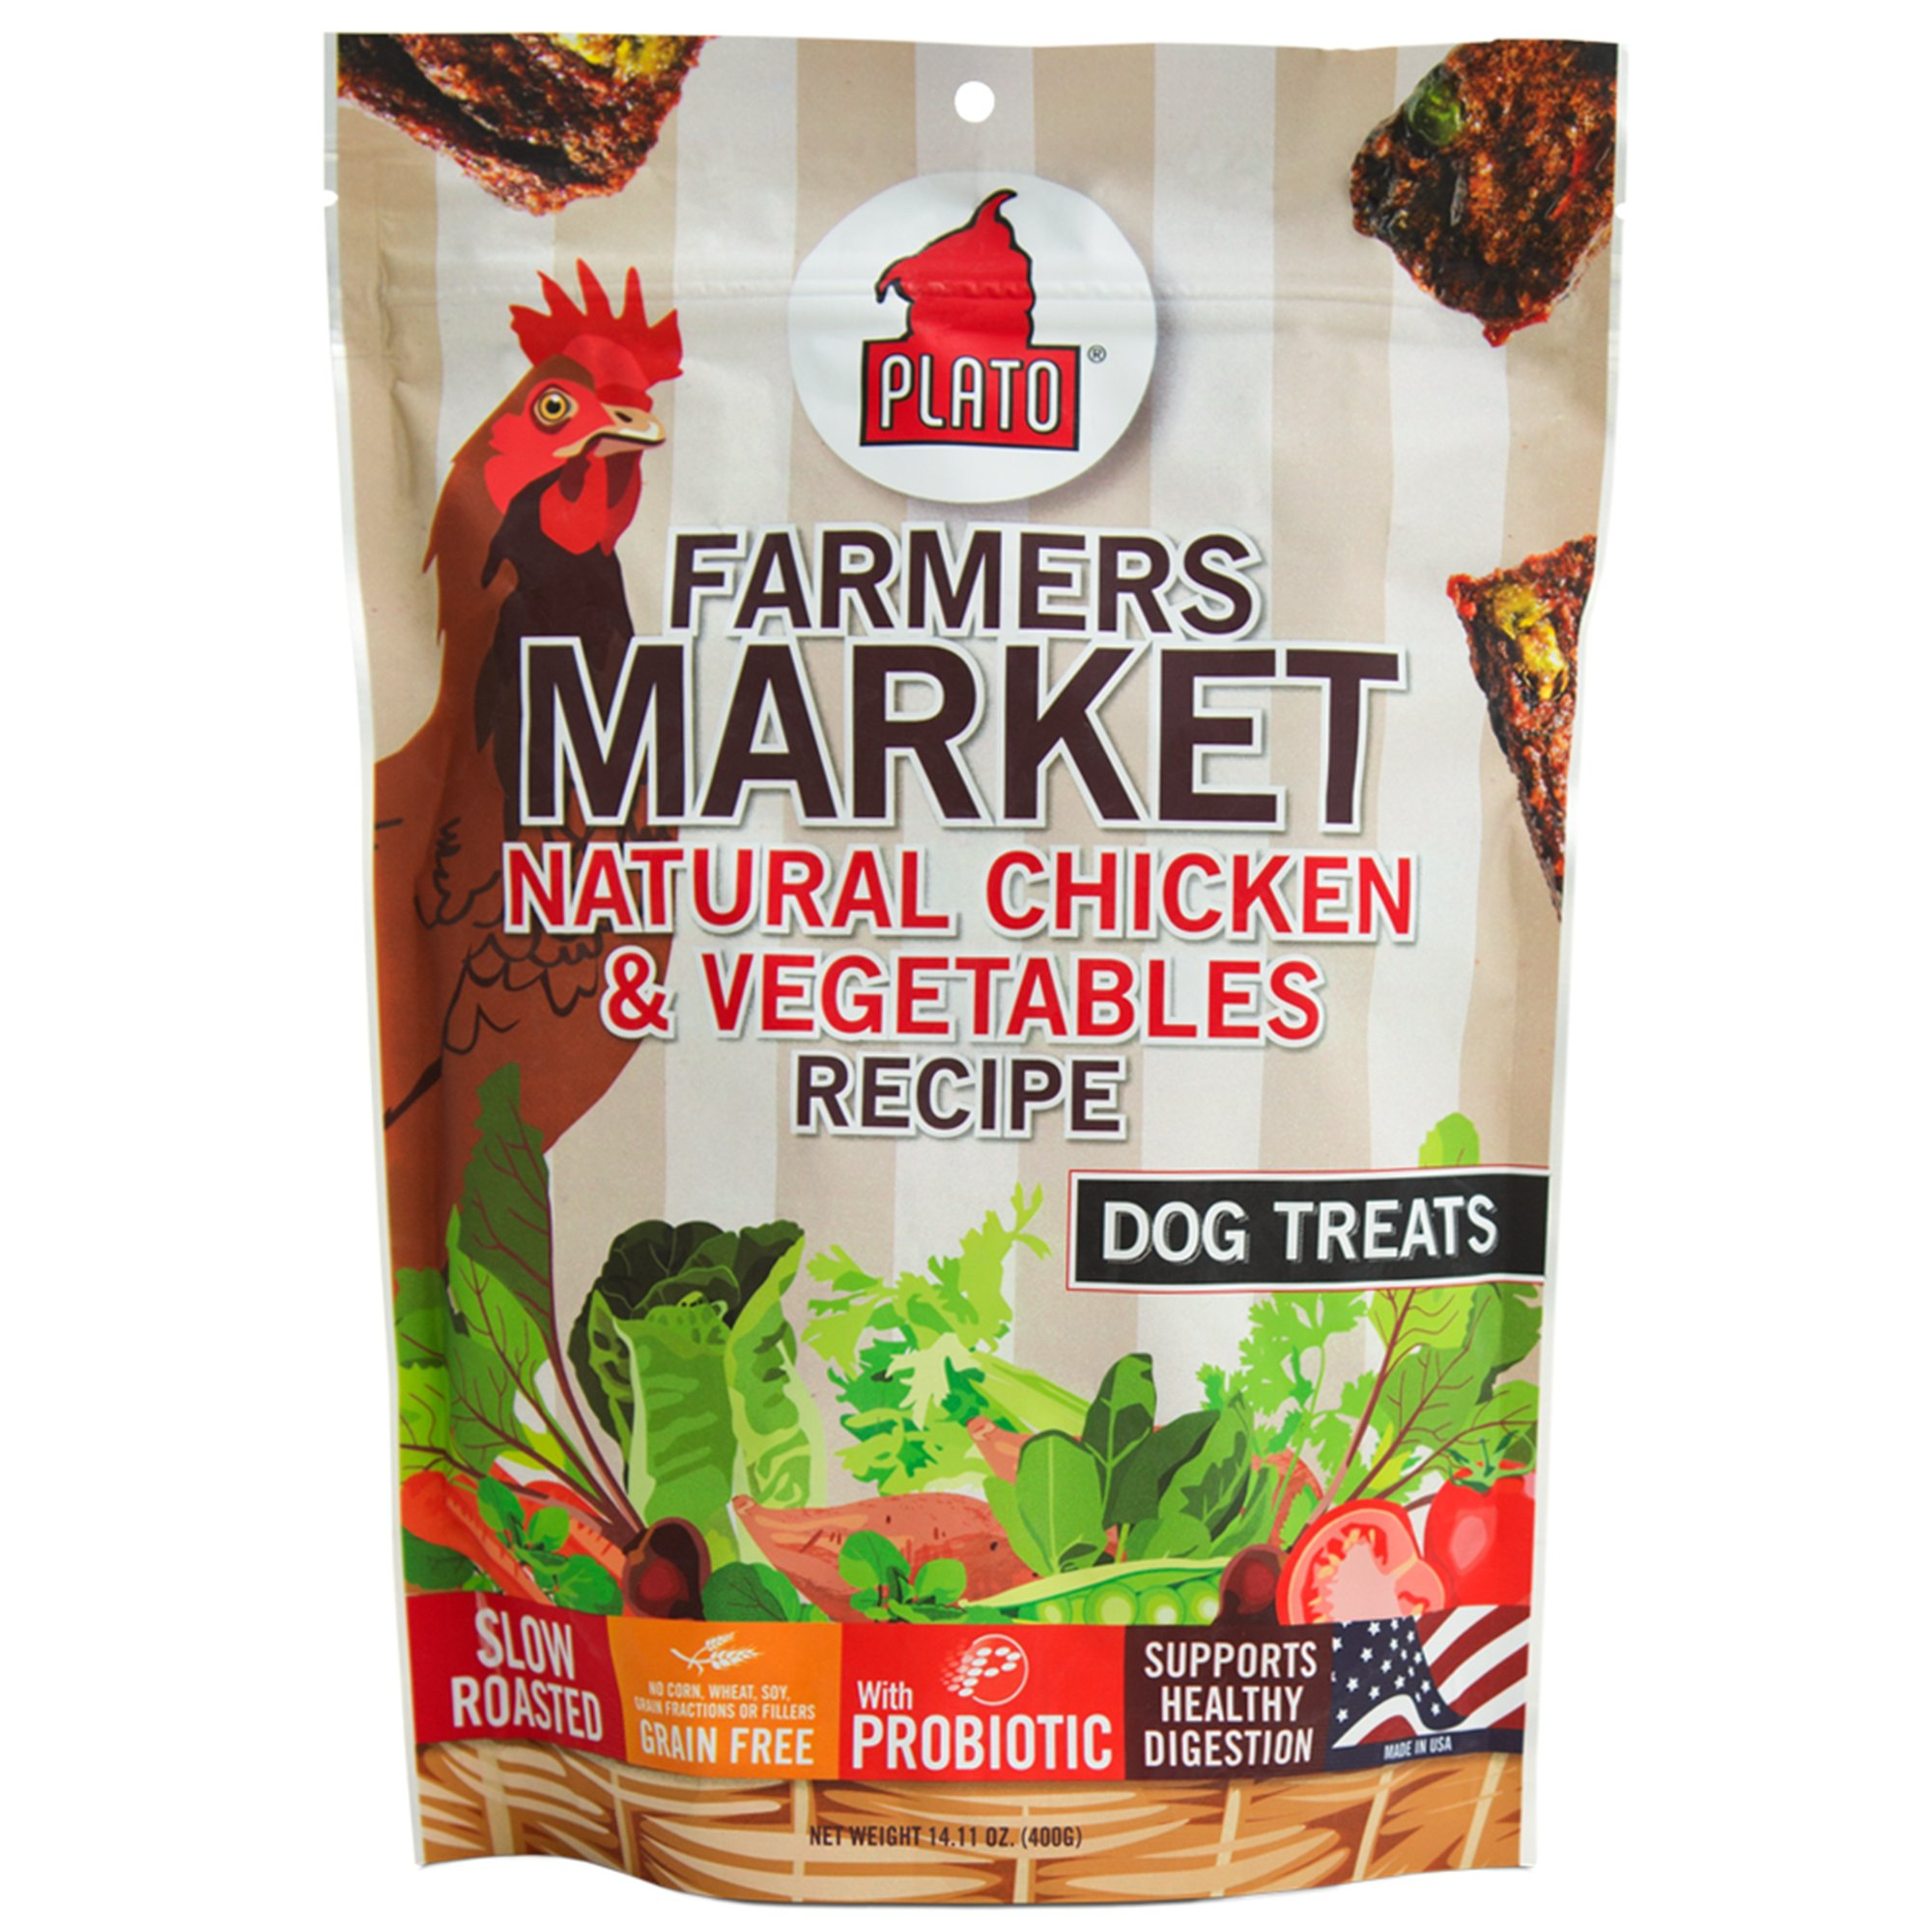 Plato Famer's Market Chicken & Vegetable Recipe Dog Treats